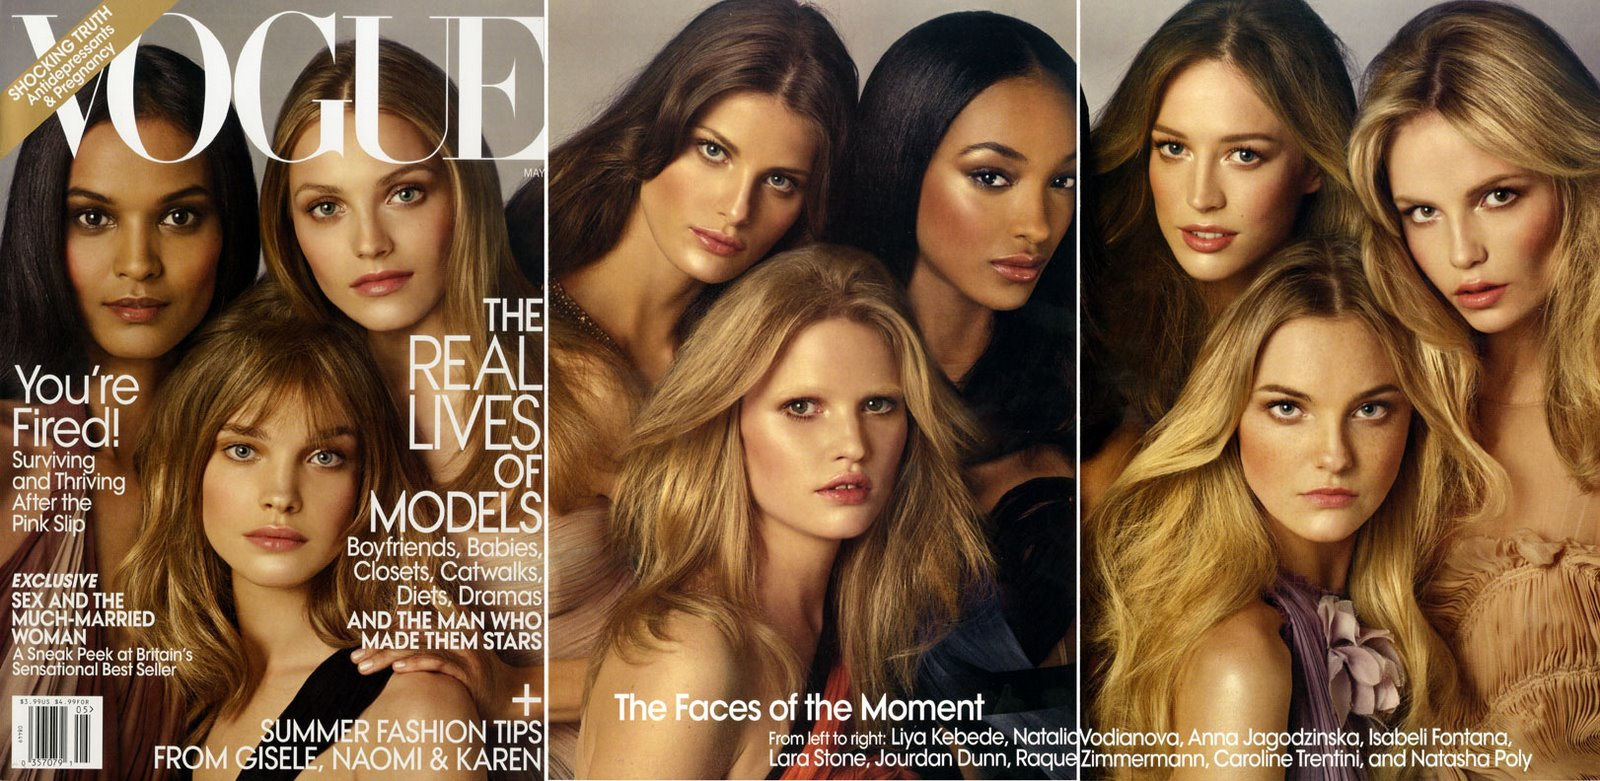 [May+2009+American+Vogue+cover+photo+Steven+Meisel+Isabeli+Fontana+Natasha+Poly+Jourdan+Dunn+Women+Management+New+York+Blog]